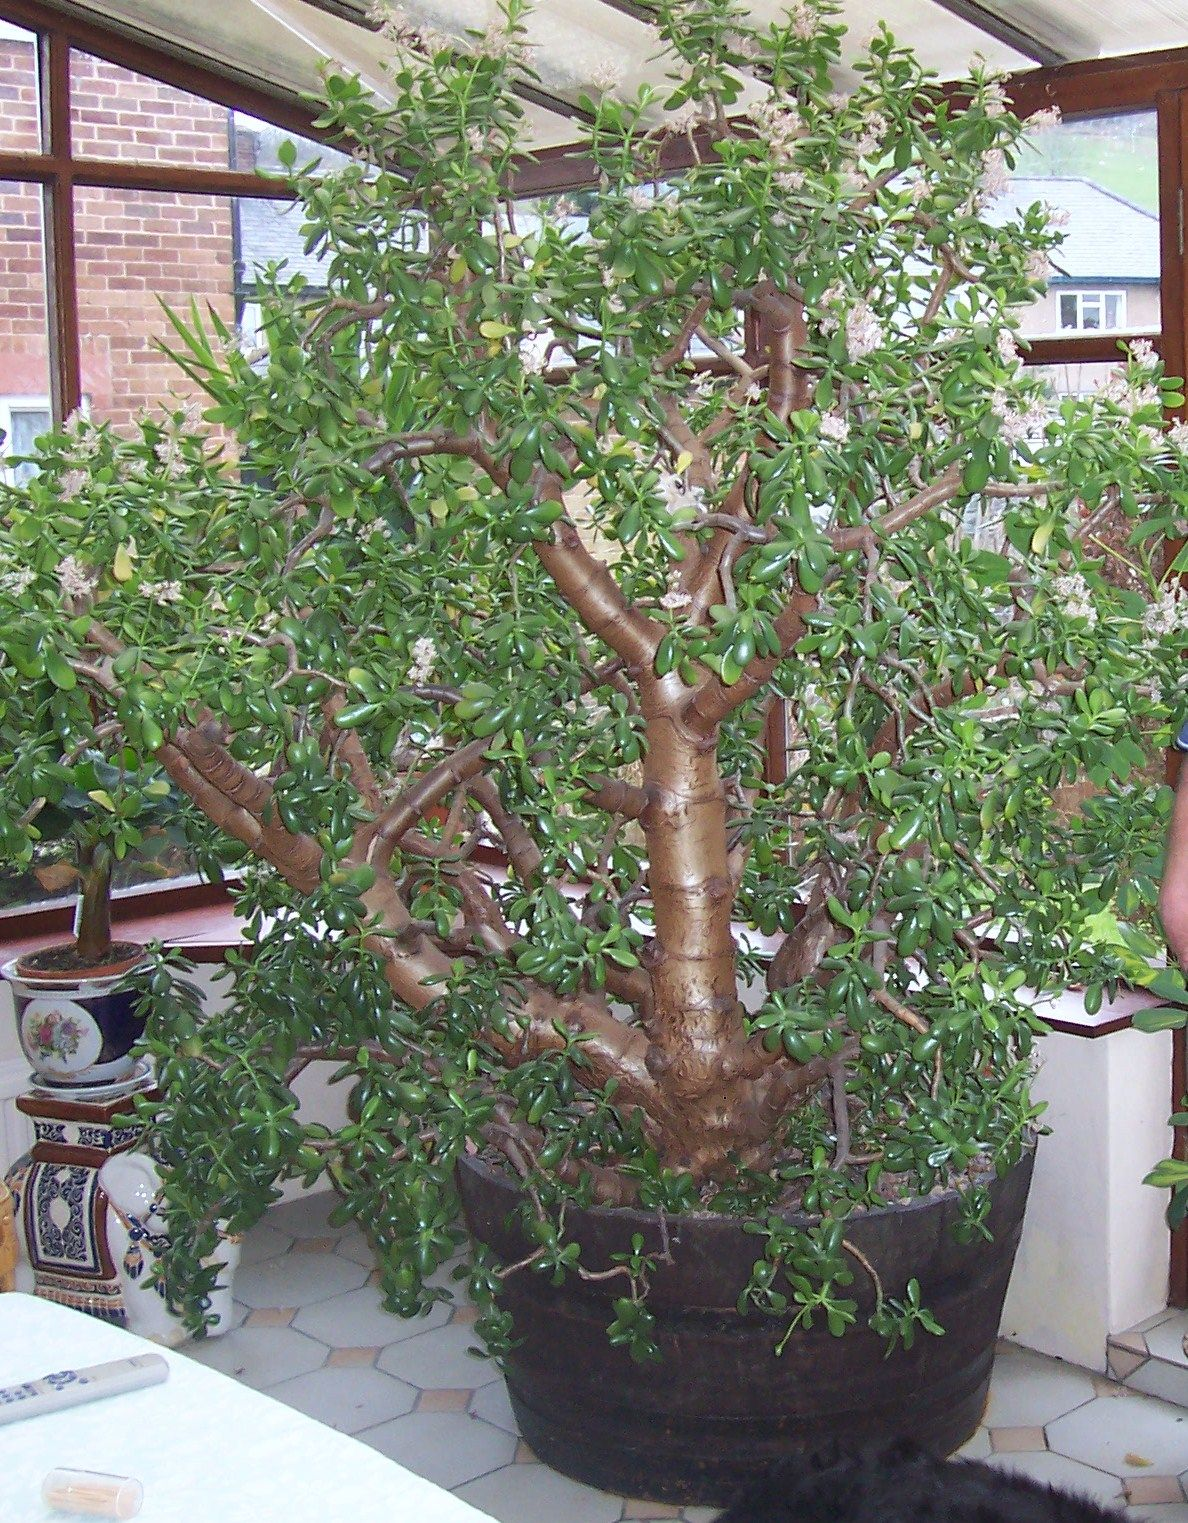 I Plan To Have Many Very Laegr Jade Plants Inside And Out My Mom Has Jade Trees All Around Her Yards Jade Plants House Plant Care Plants